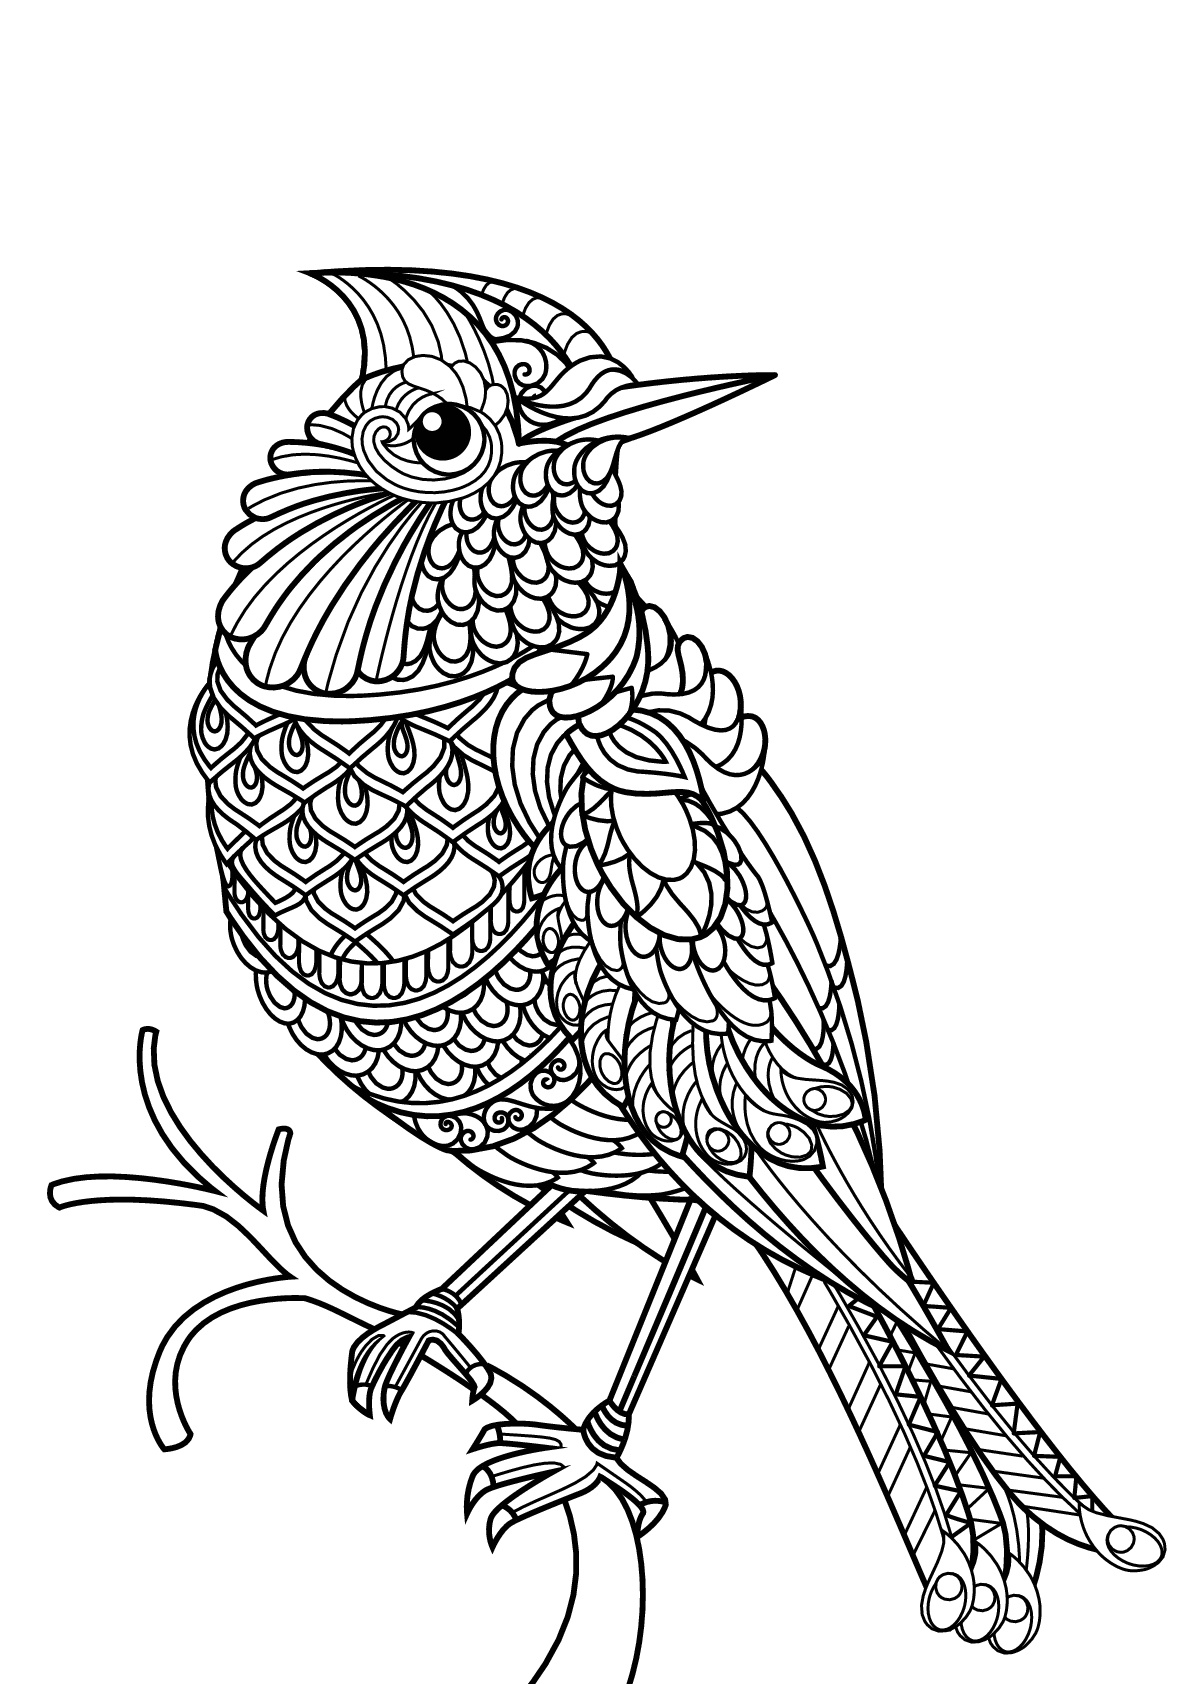 kids wildlife coloring pages - photo#48